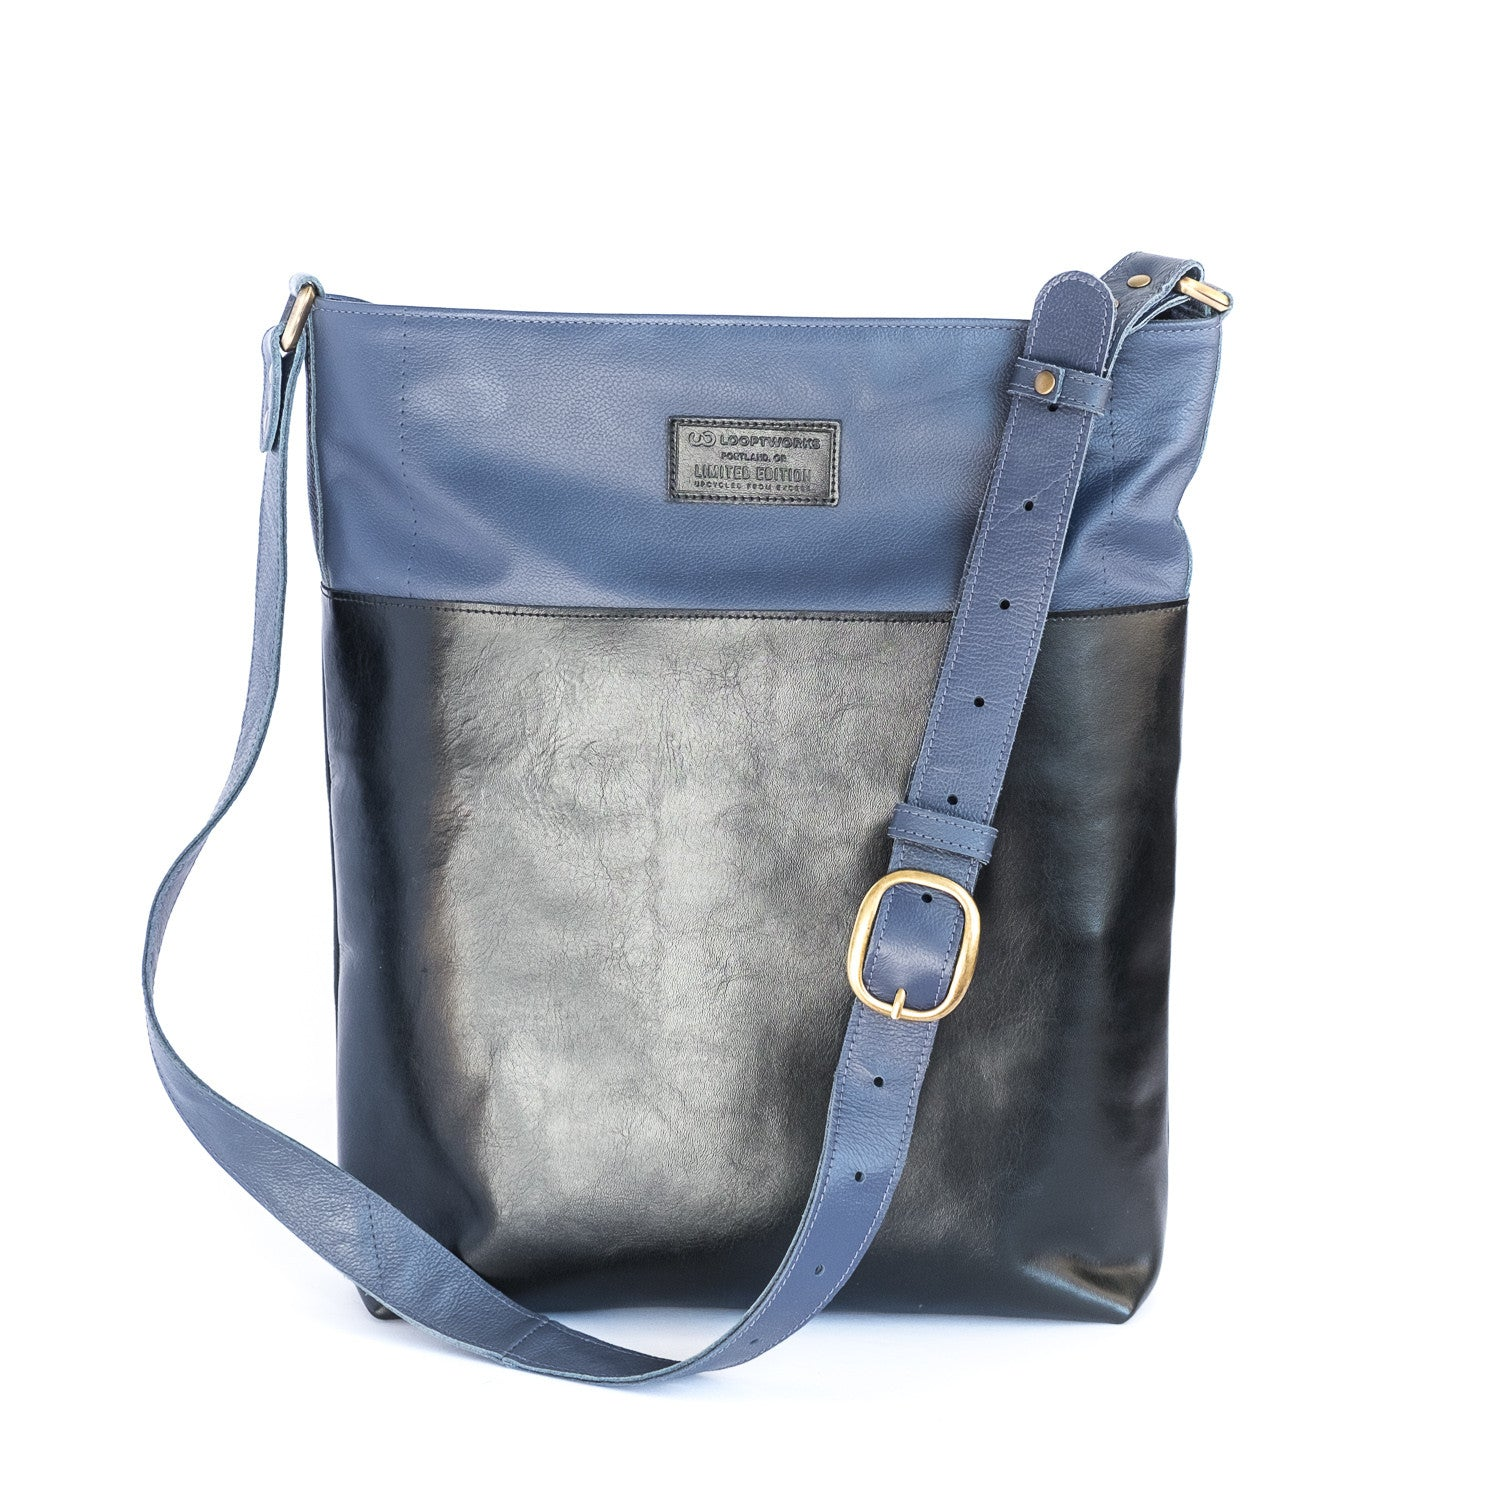 In Flight LUV Seat Caliana Laptop Crossbody